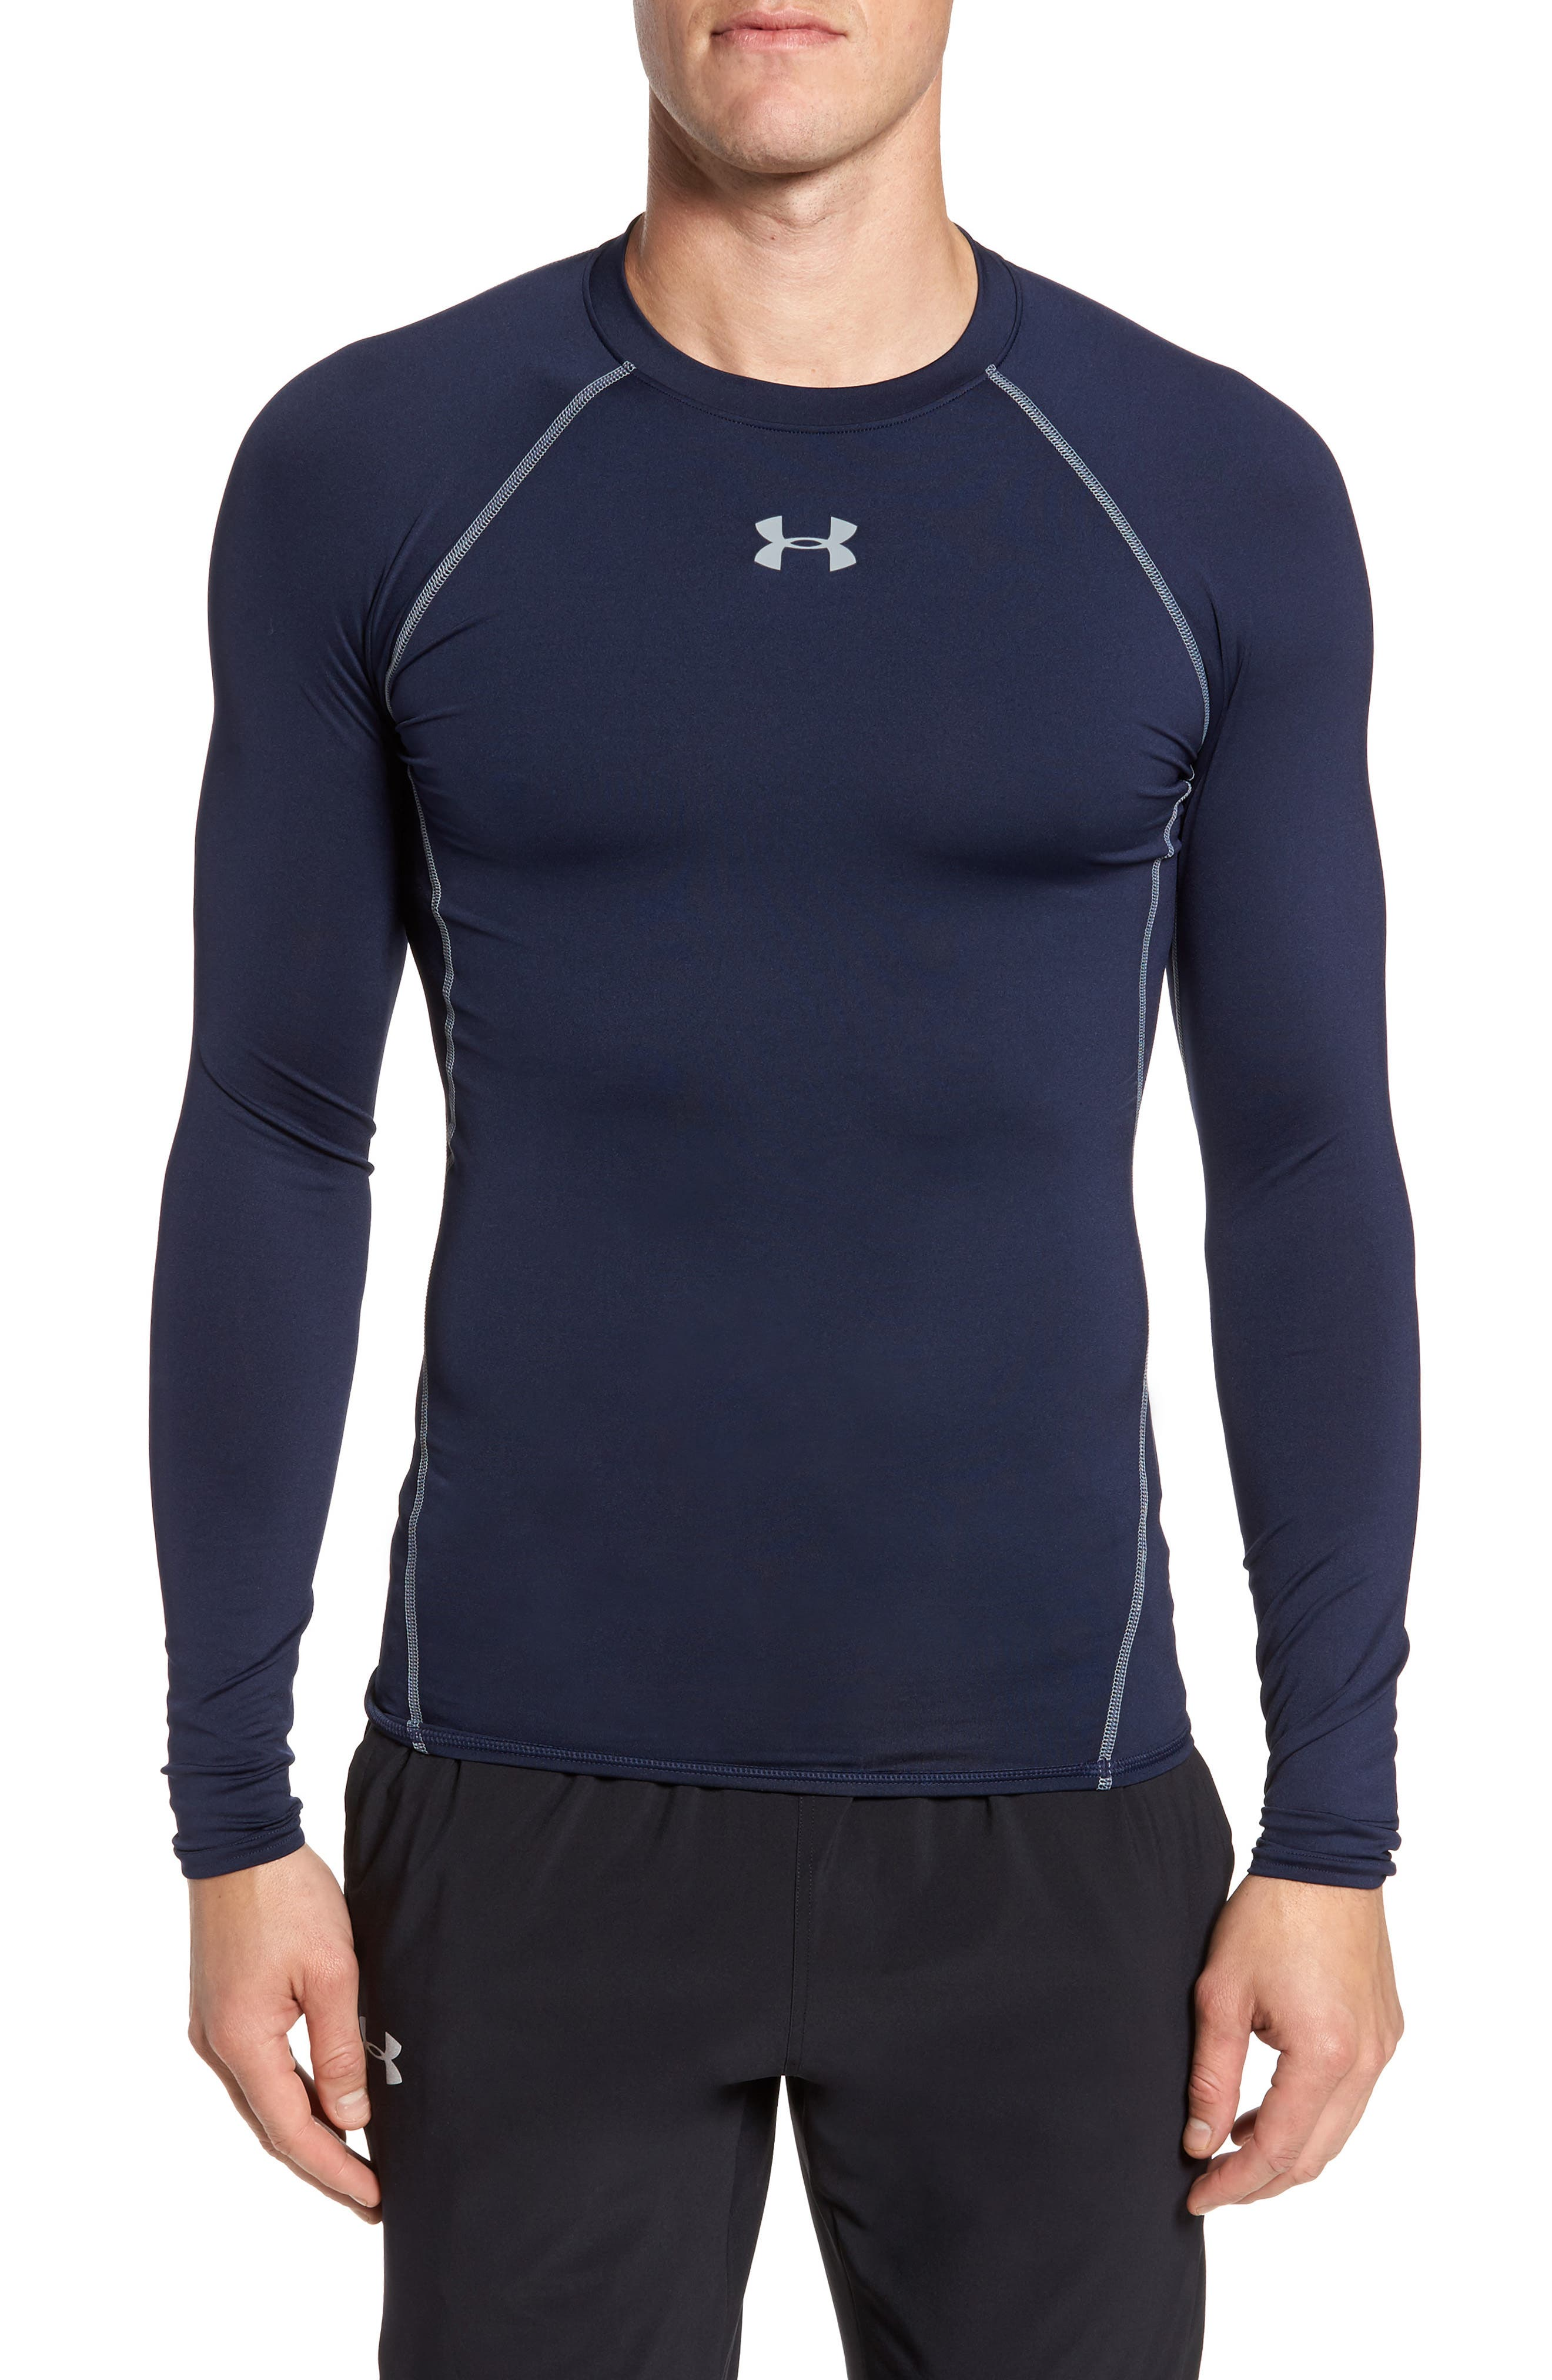 Under Armour Heatgear Compression Fit Long Sleeve T-Shirt